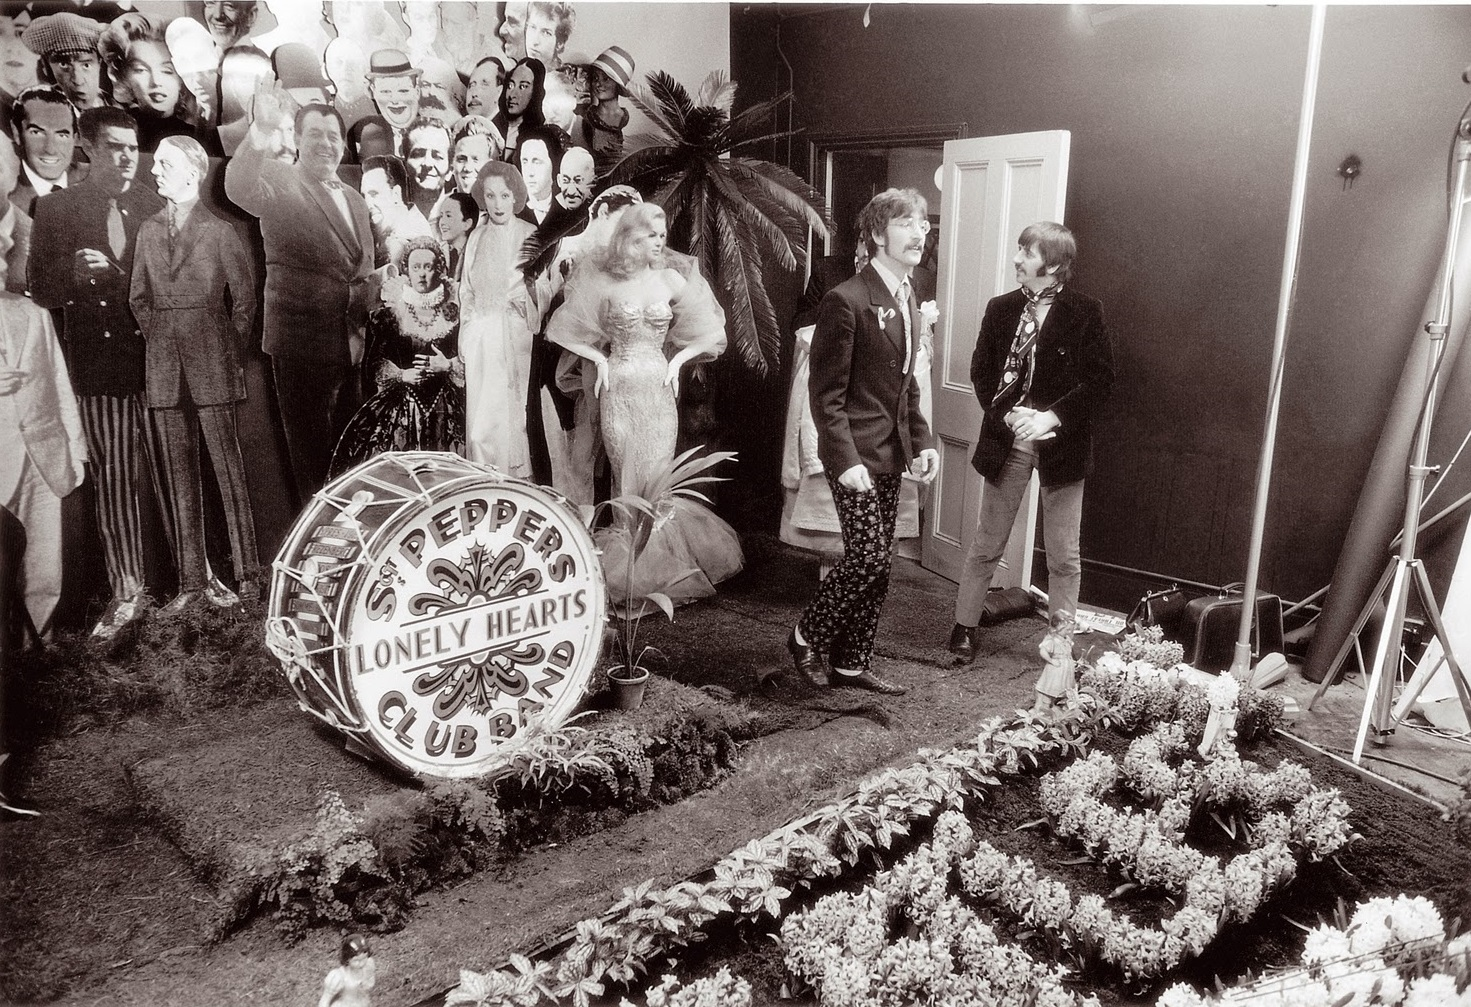 z Making The Cover for Sgt Pepper's Lonely Hearts Club Band (1)